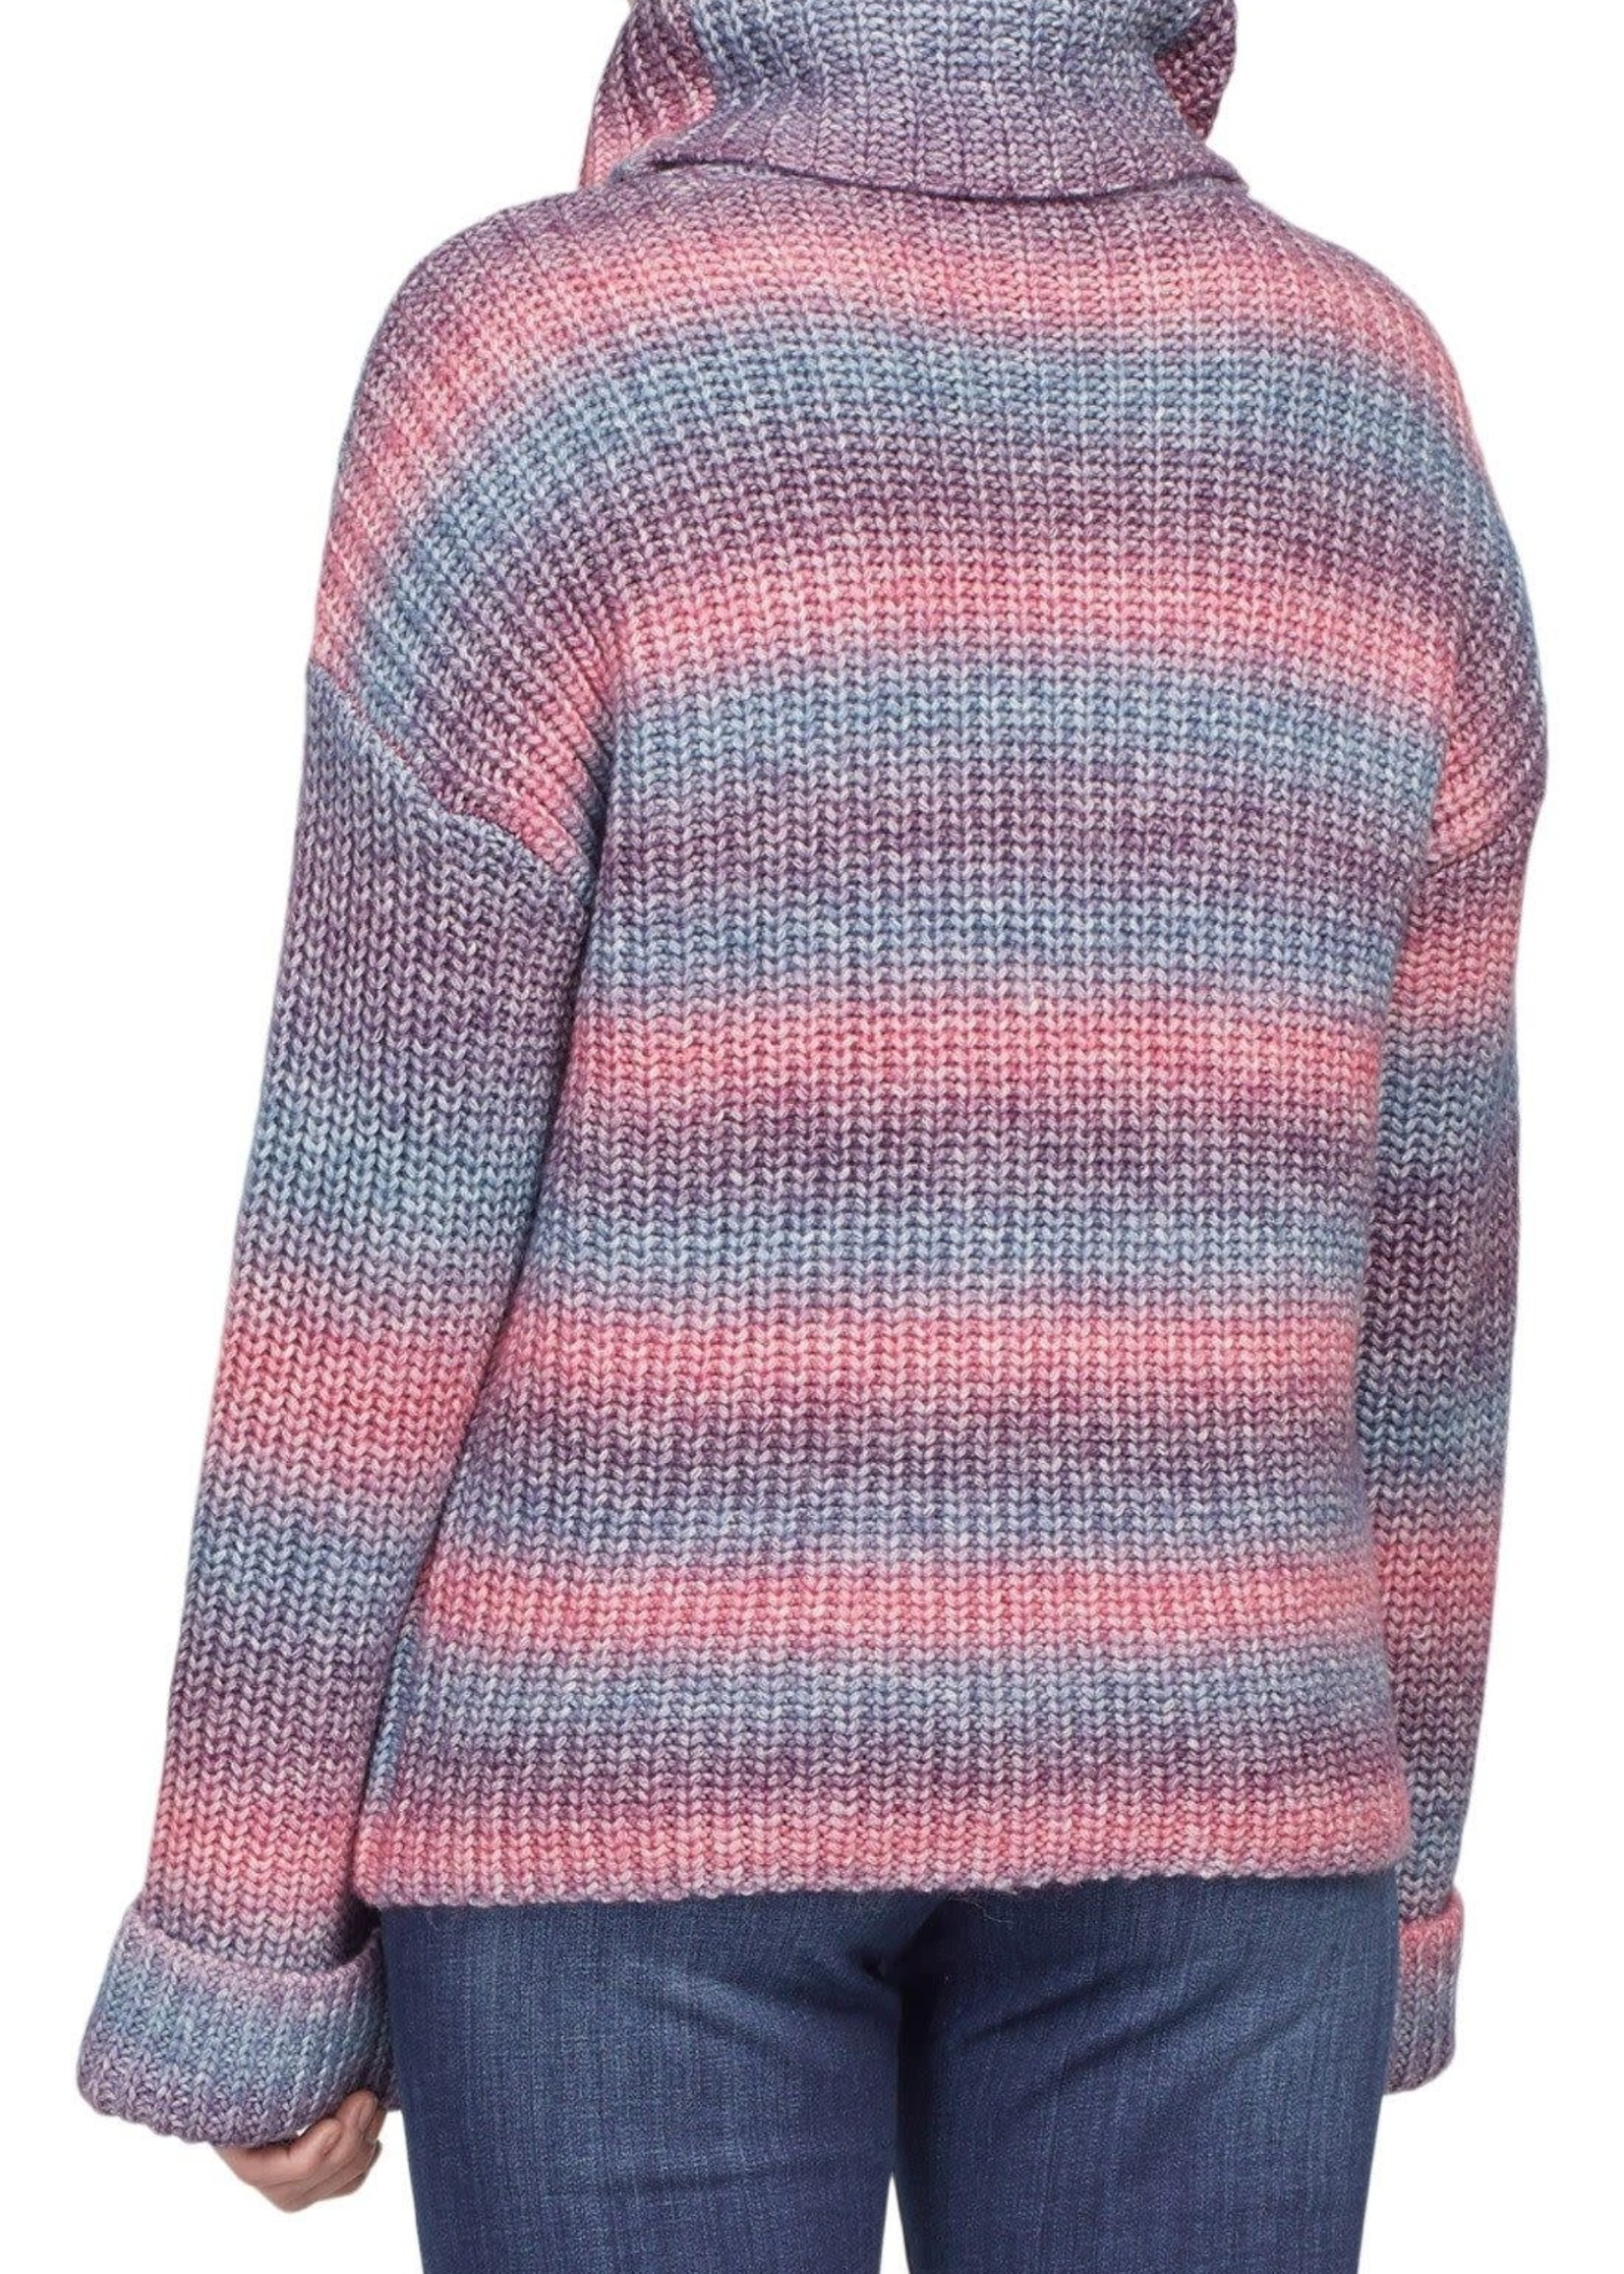 Tribal Tribal Cowl Neck L/S Sweater  Blue Frosting